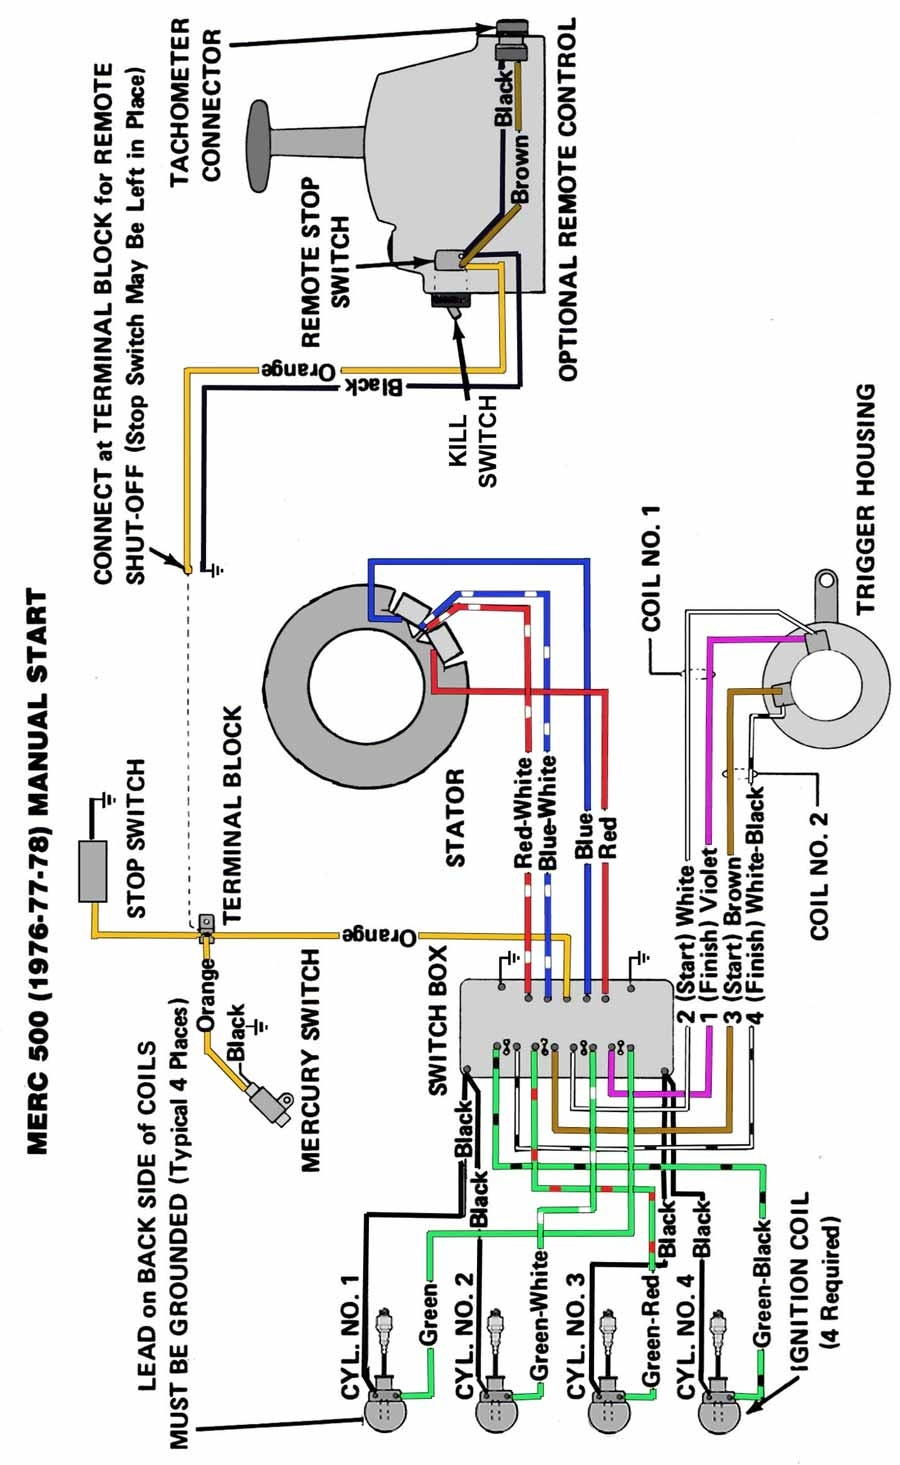 mercury outboard wiring diagrams mastertech marin intended for 76 evinrude wiring diagram?resize\\\\\\\\\\\\\\\=665%2C1082\\\\\\\\\\\\\\\&ssl\\\\\\\\\\\\\\\=1 mercury outboard ignition switch diagram color coded wiring Boat Ignition Switch Wiring Diagram at cos-gaming.co